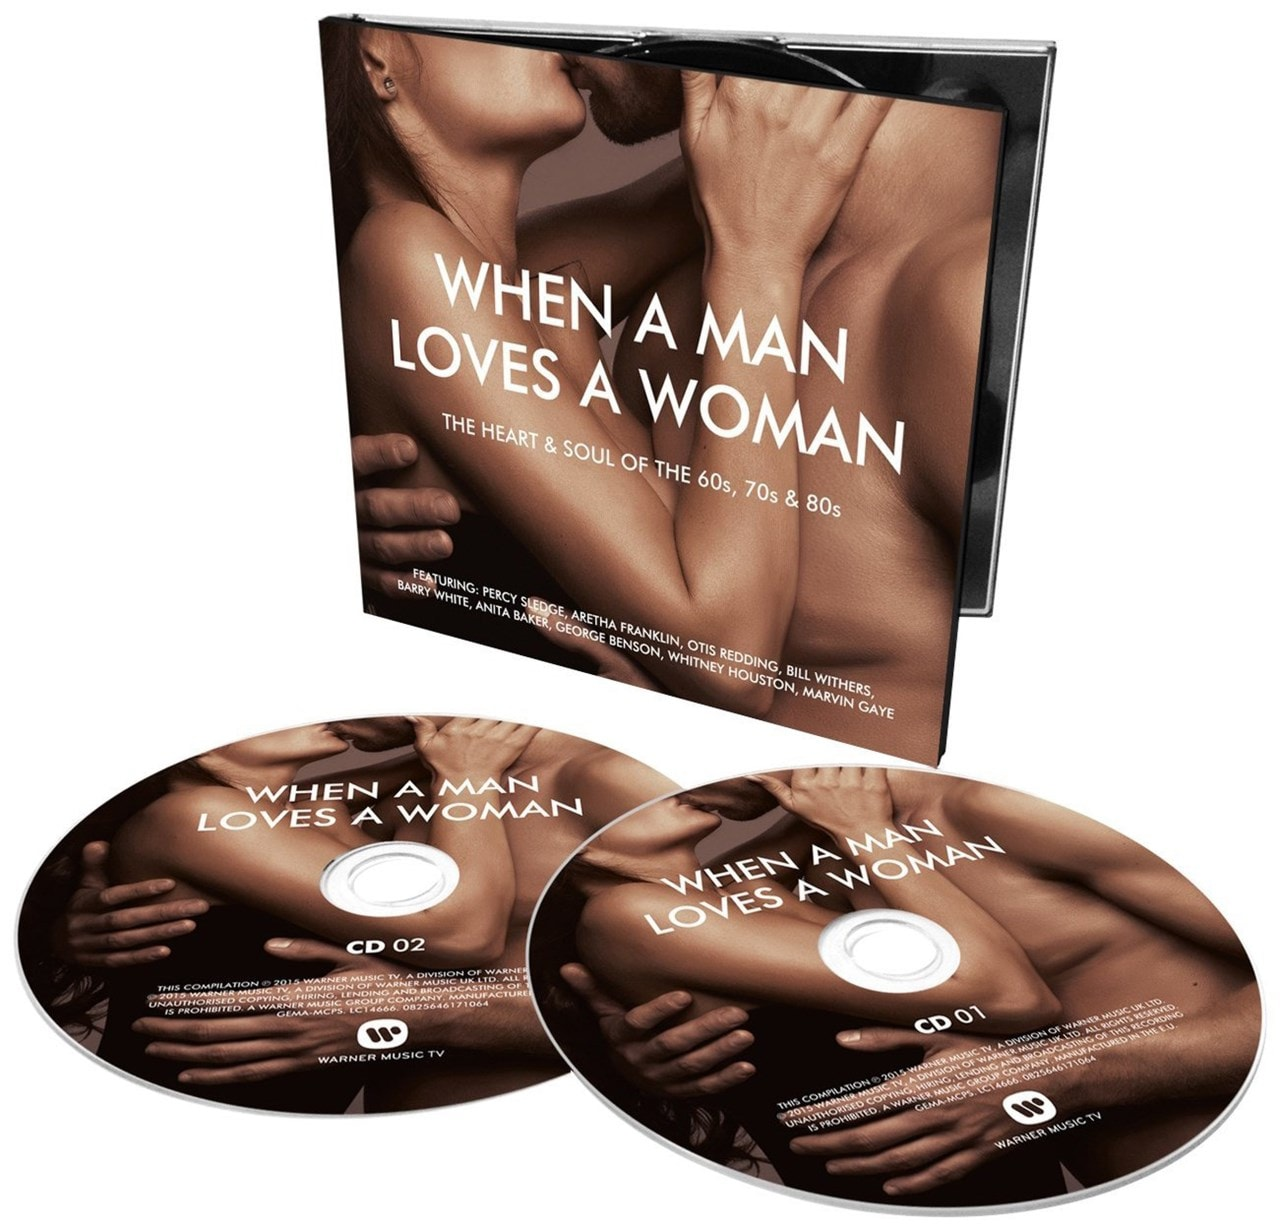 When a Man Loves a Woman: The Heart & Soul of the 60s, 70s & 80s - 2